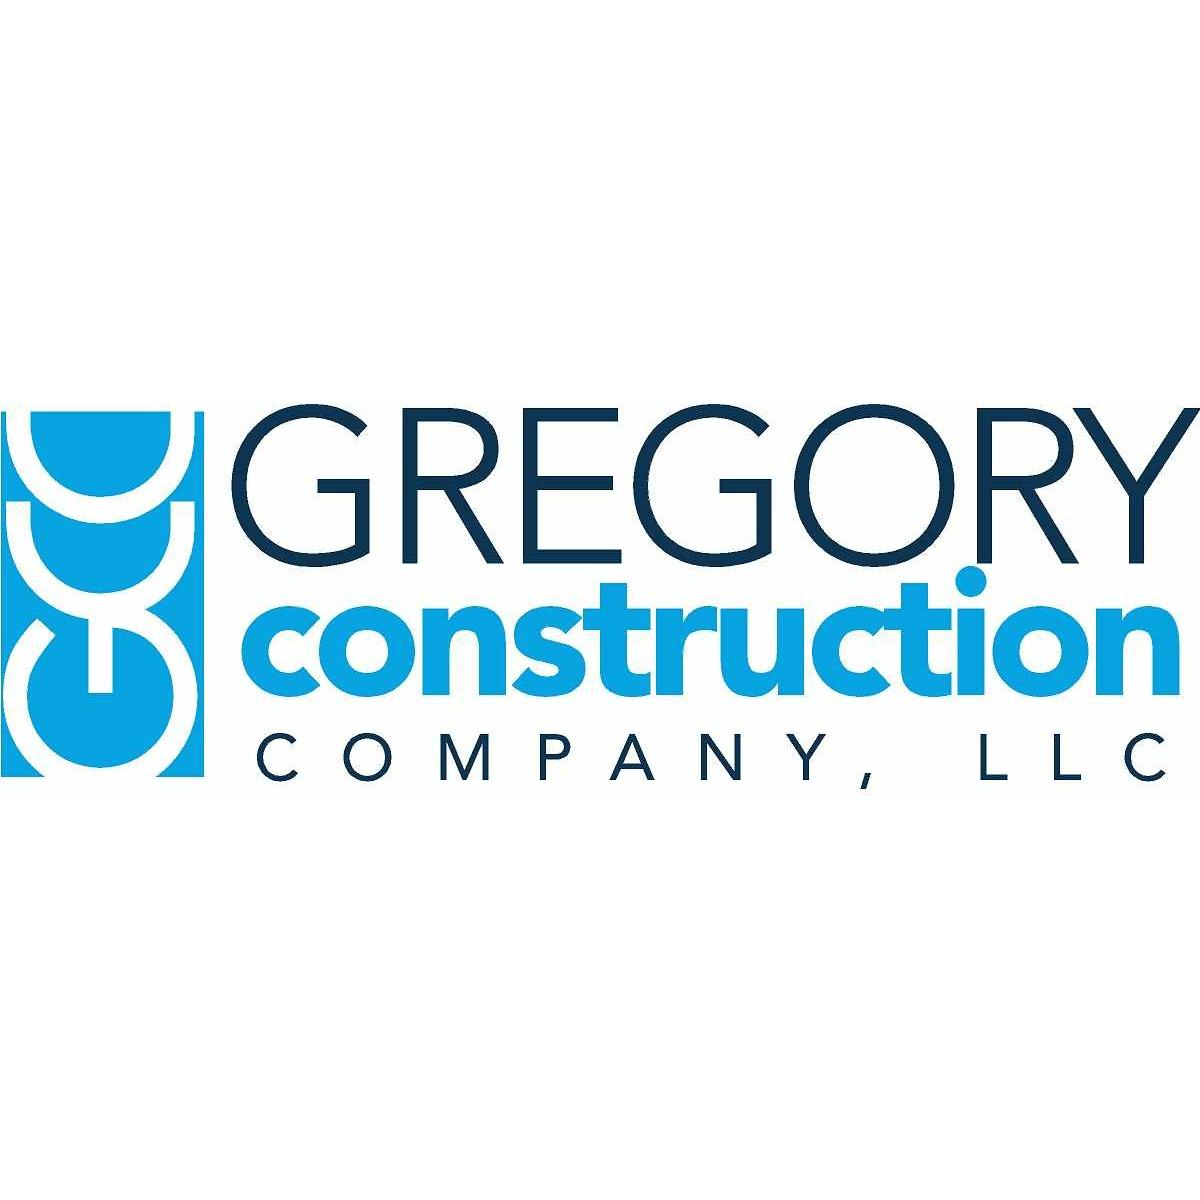 Gregory Construction Company LLC - Indianapolis, IN 46227 - (317)742-0222 | ShowMeLocal.com